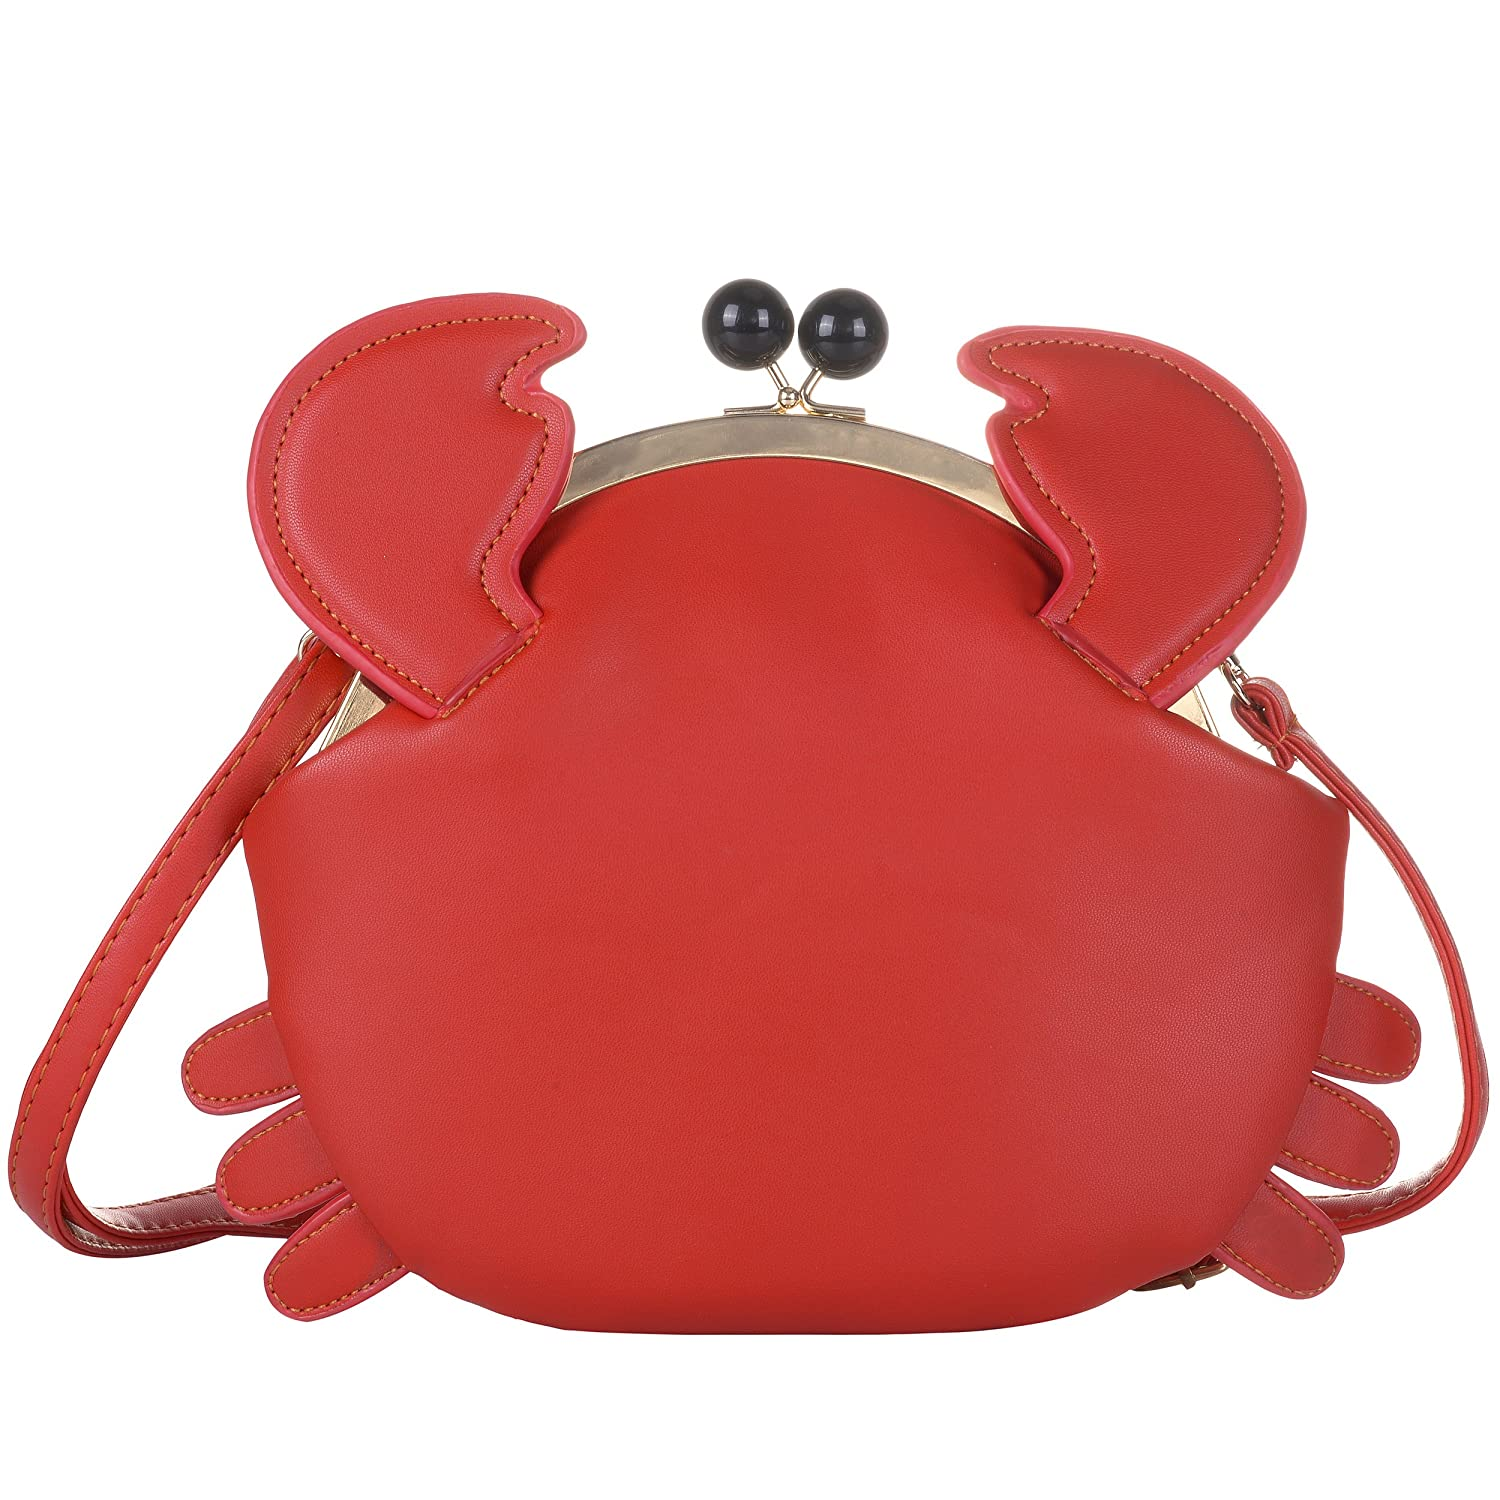 QZUnique Women's PU Crab Clasp Closure Tote Handbag Cute Satchel Cross Body Shoulder Bag GBD-CS-BB-pangxie-heise